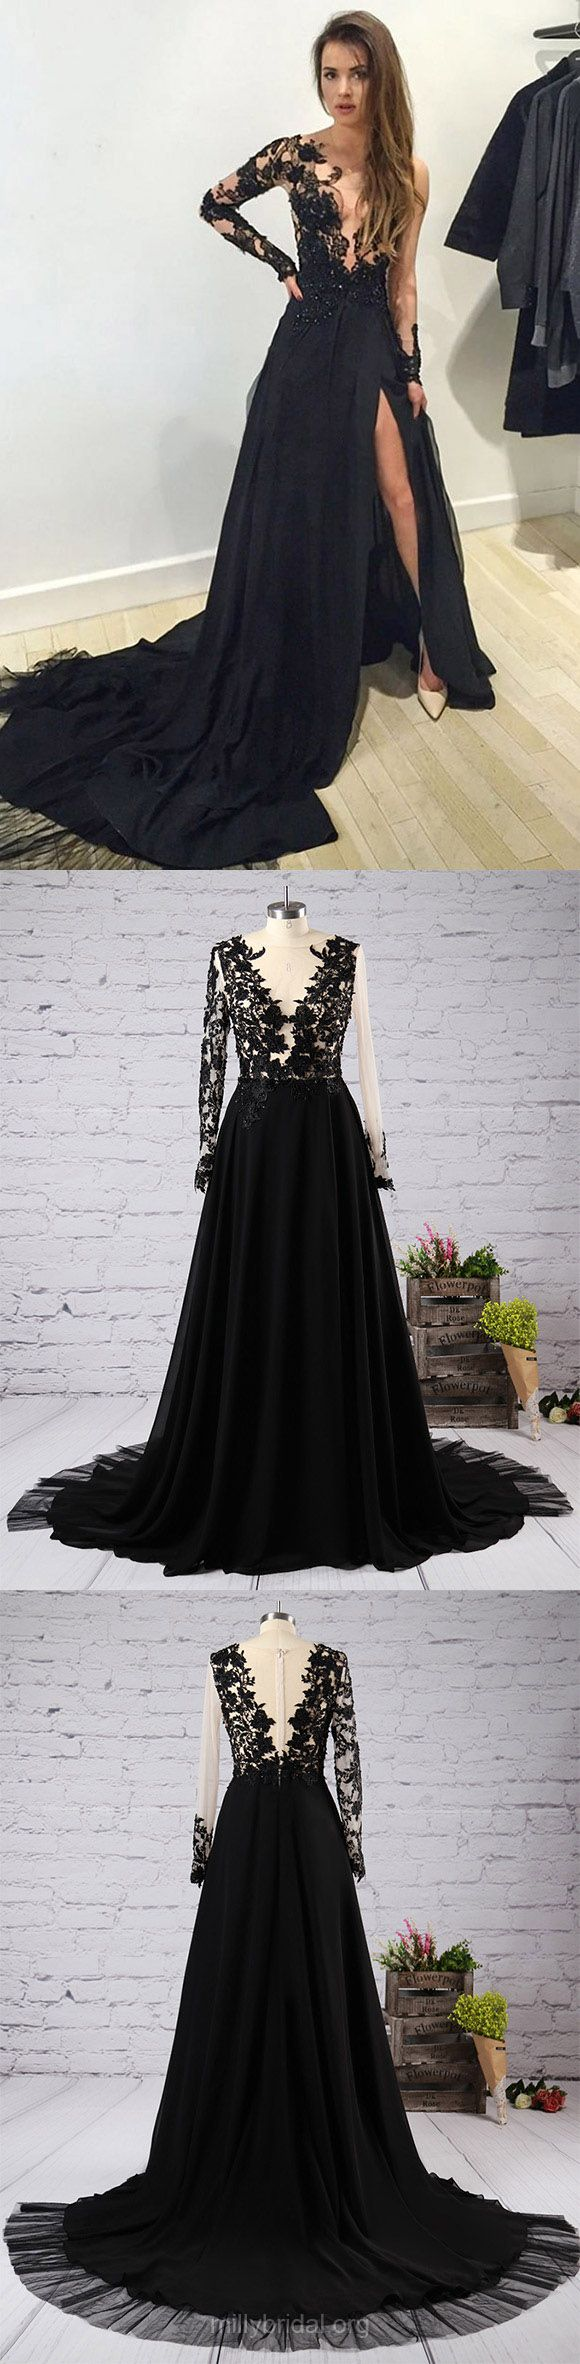 Black Prom Dresses Long Sleeve Prom Dresses Long Prom Dresses